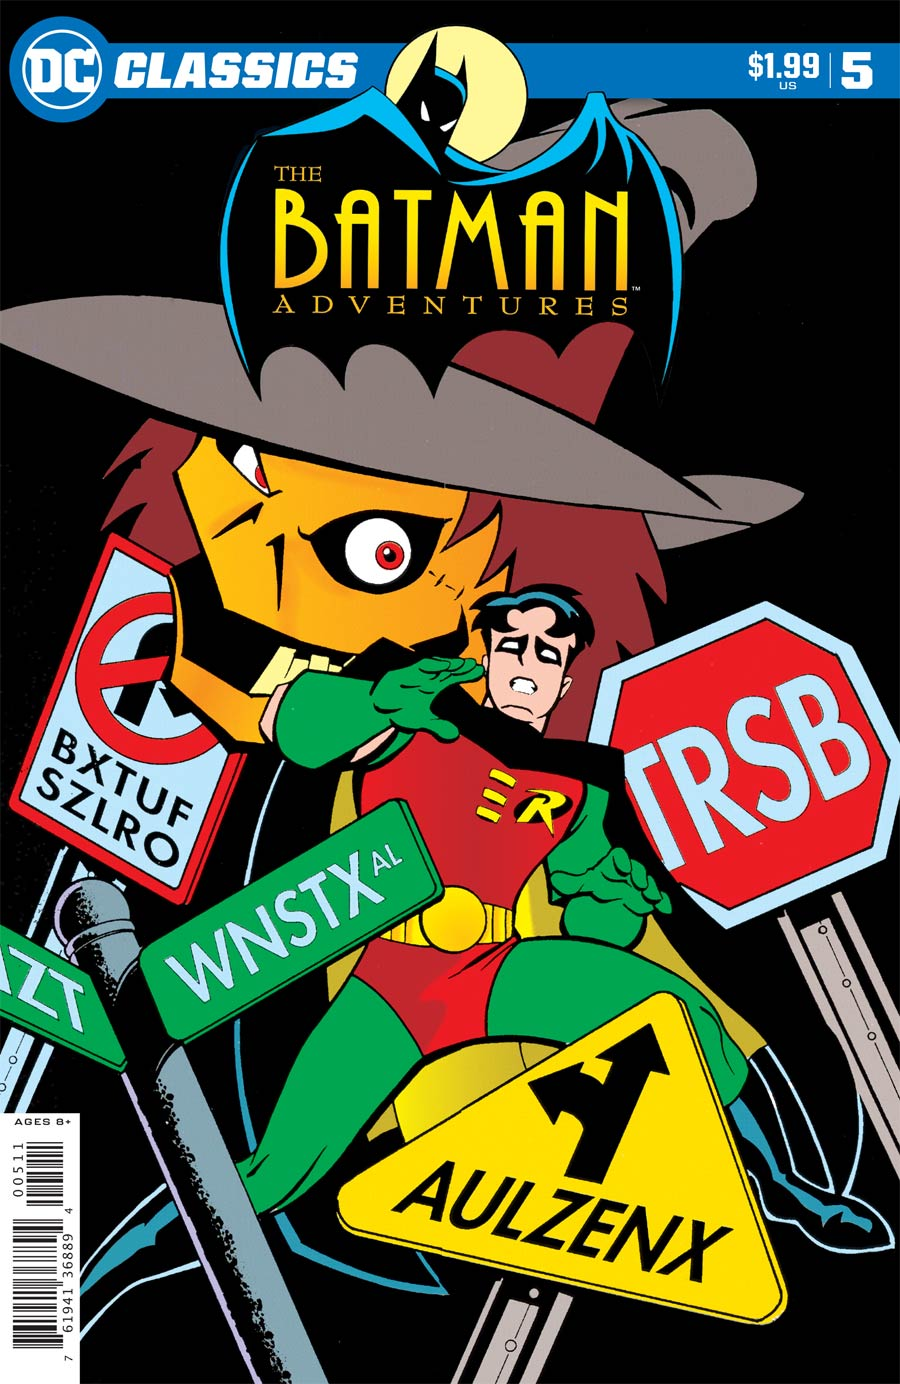 DC Classics: Batman Adventures #5 (2020)